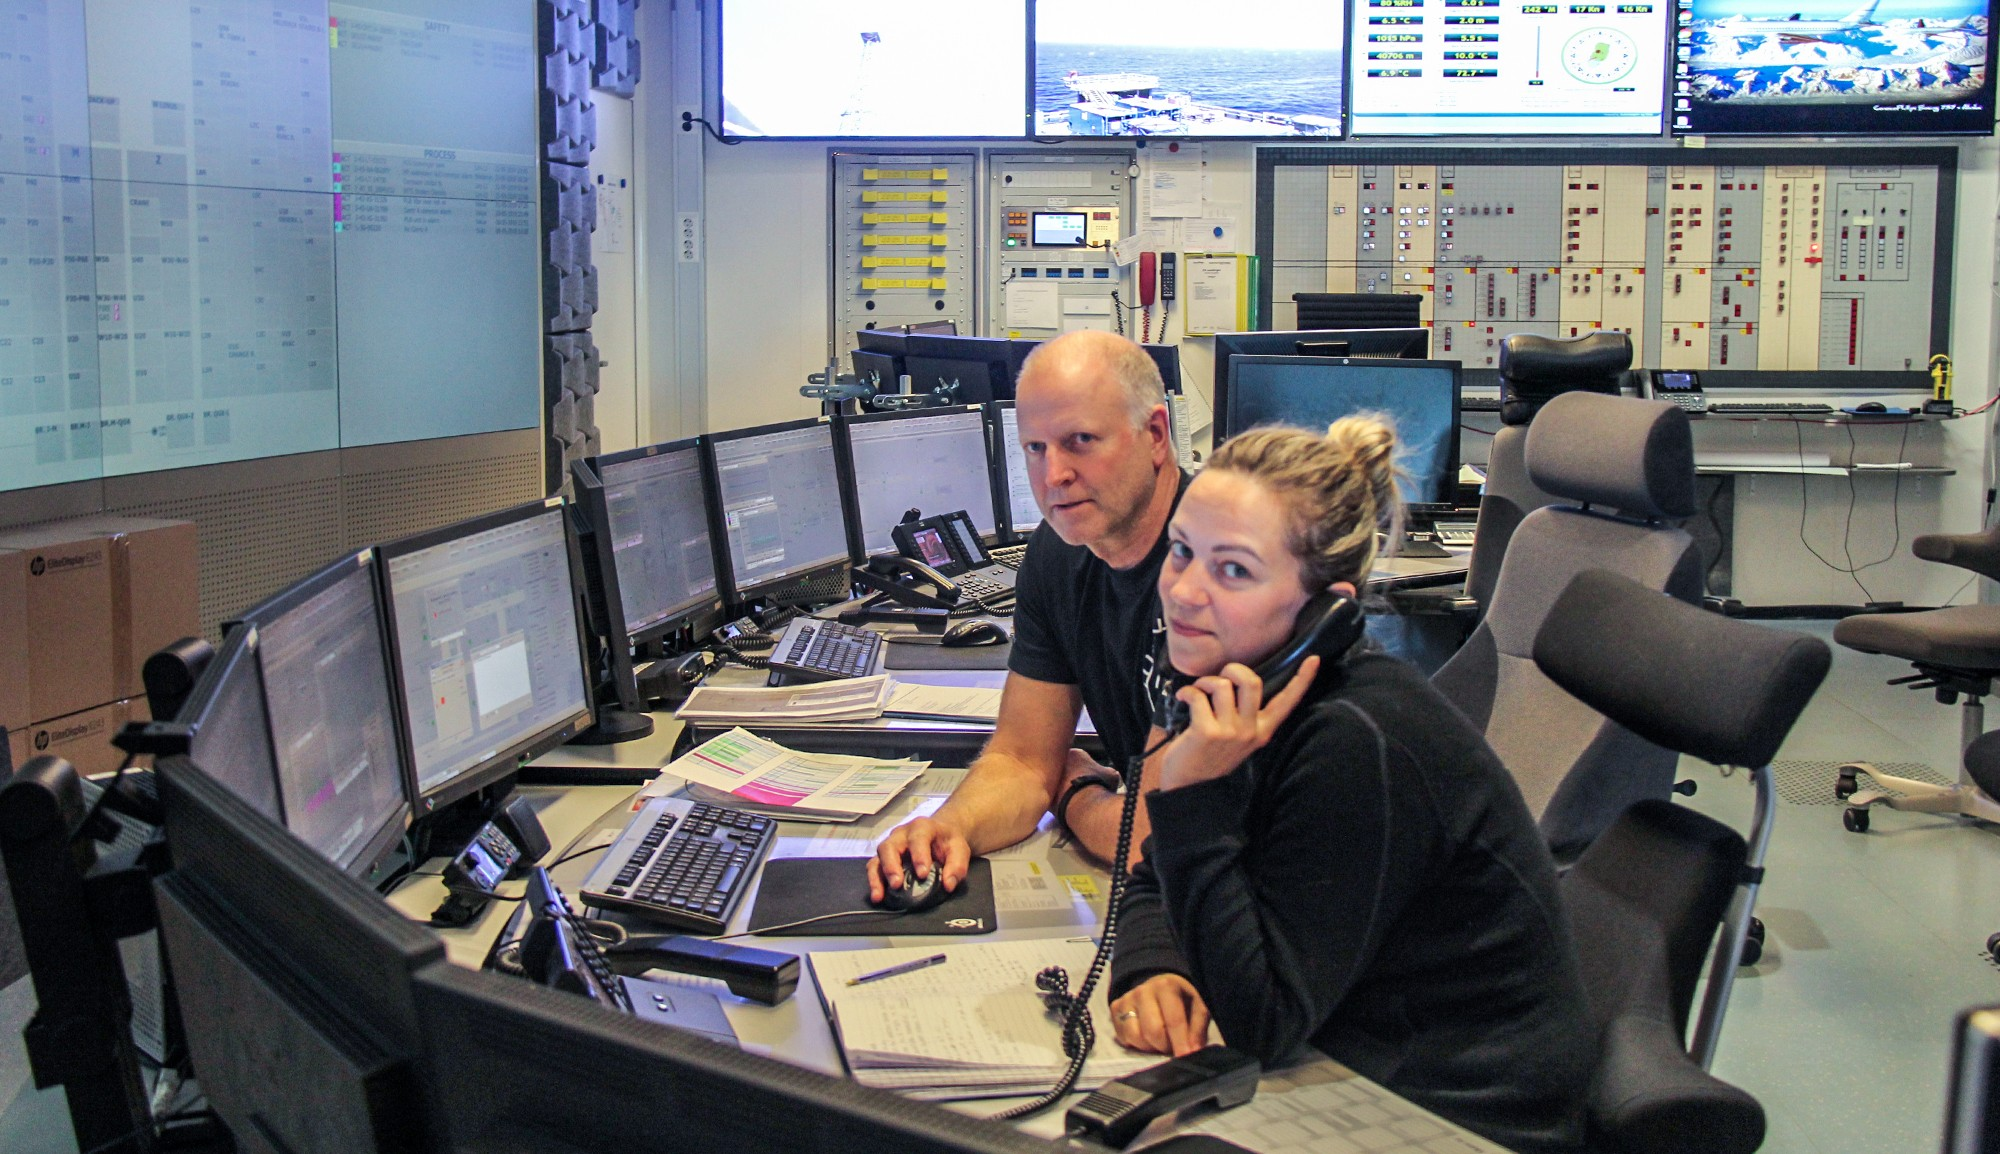 Two people at desk in control room surrounded by computer screens